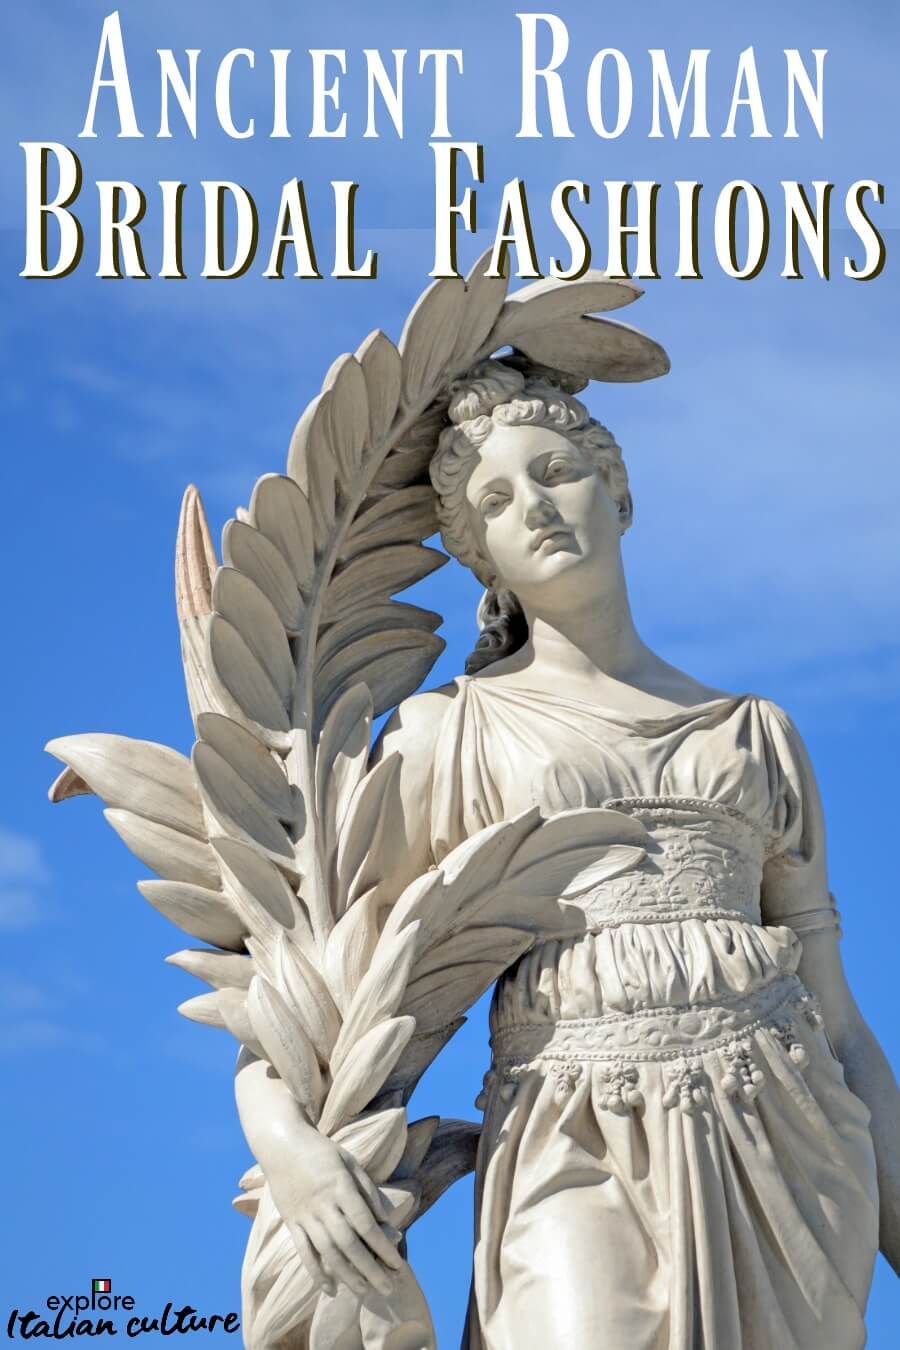 Bridal fashions and etiquette ini ancient Rome. Pin for later.